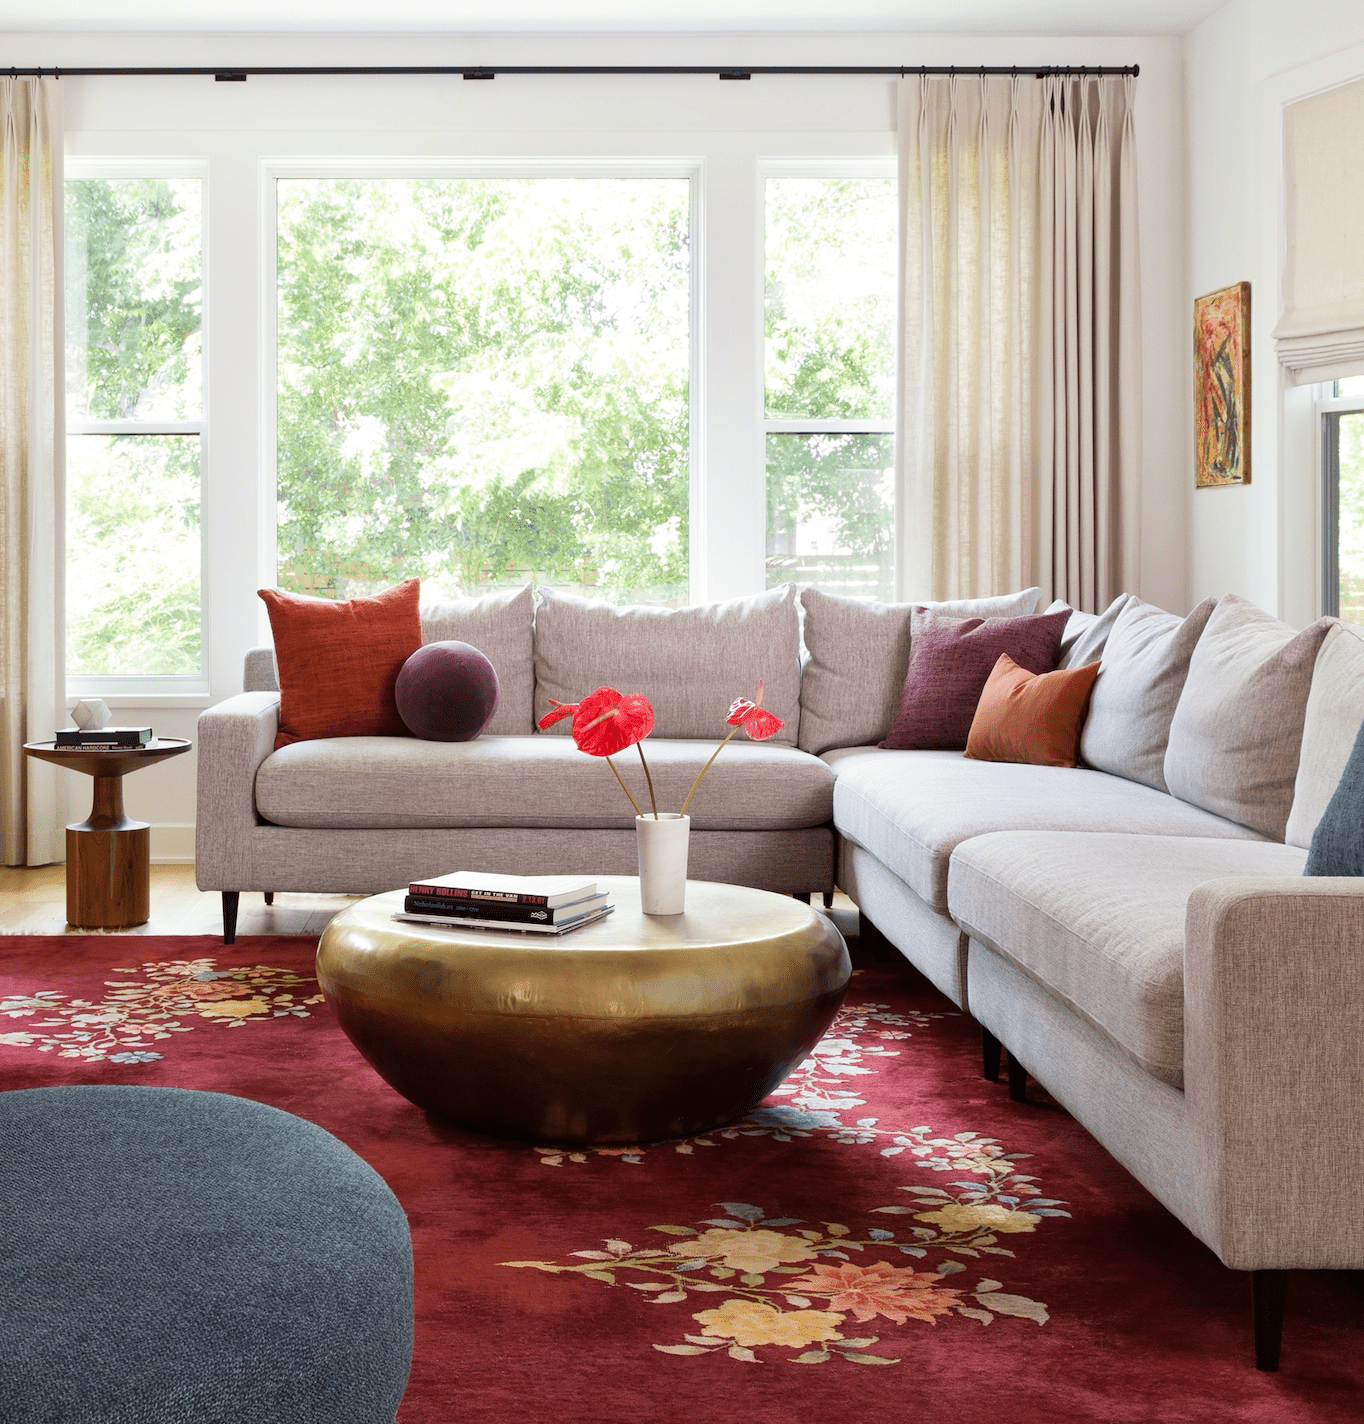 Bright vibrant living room with red rug and florals.